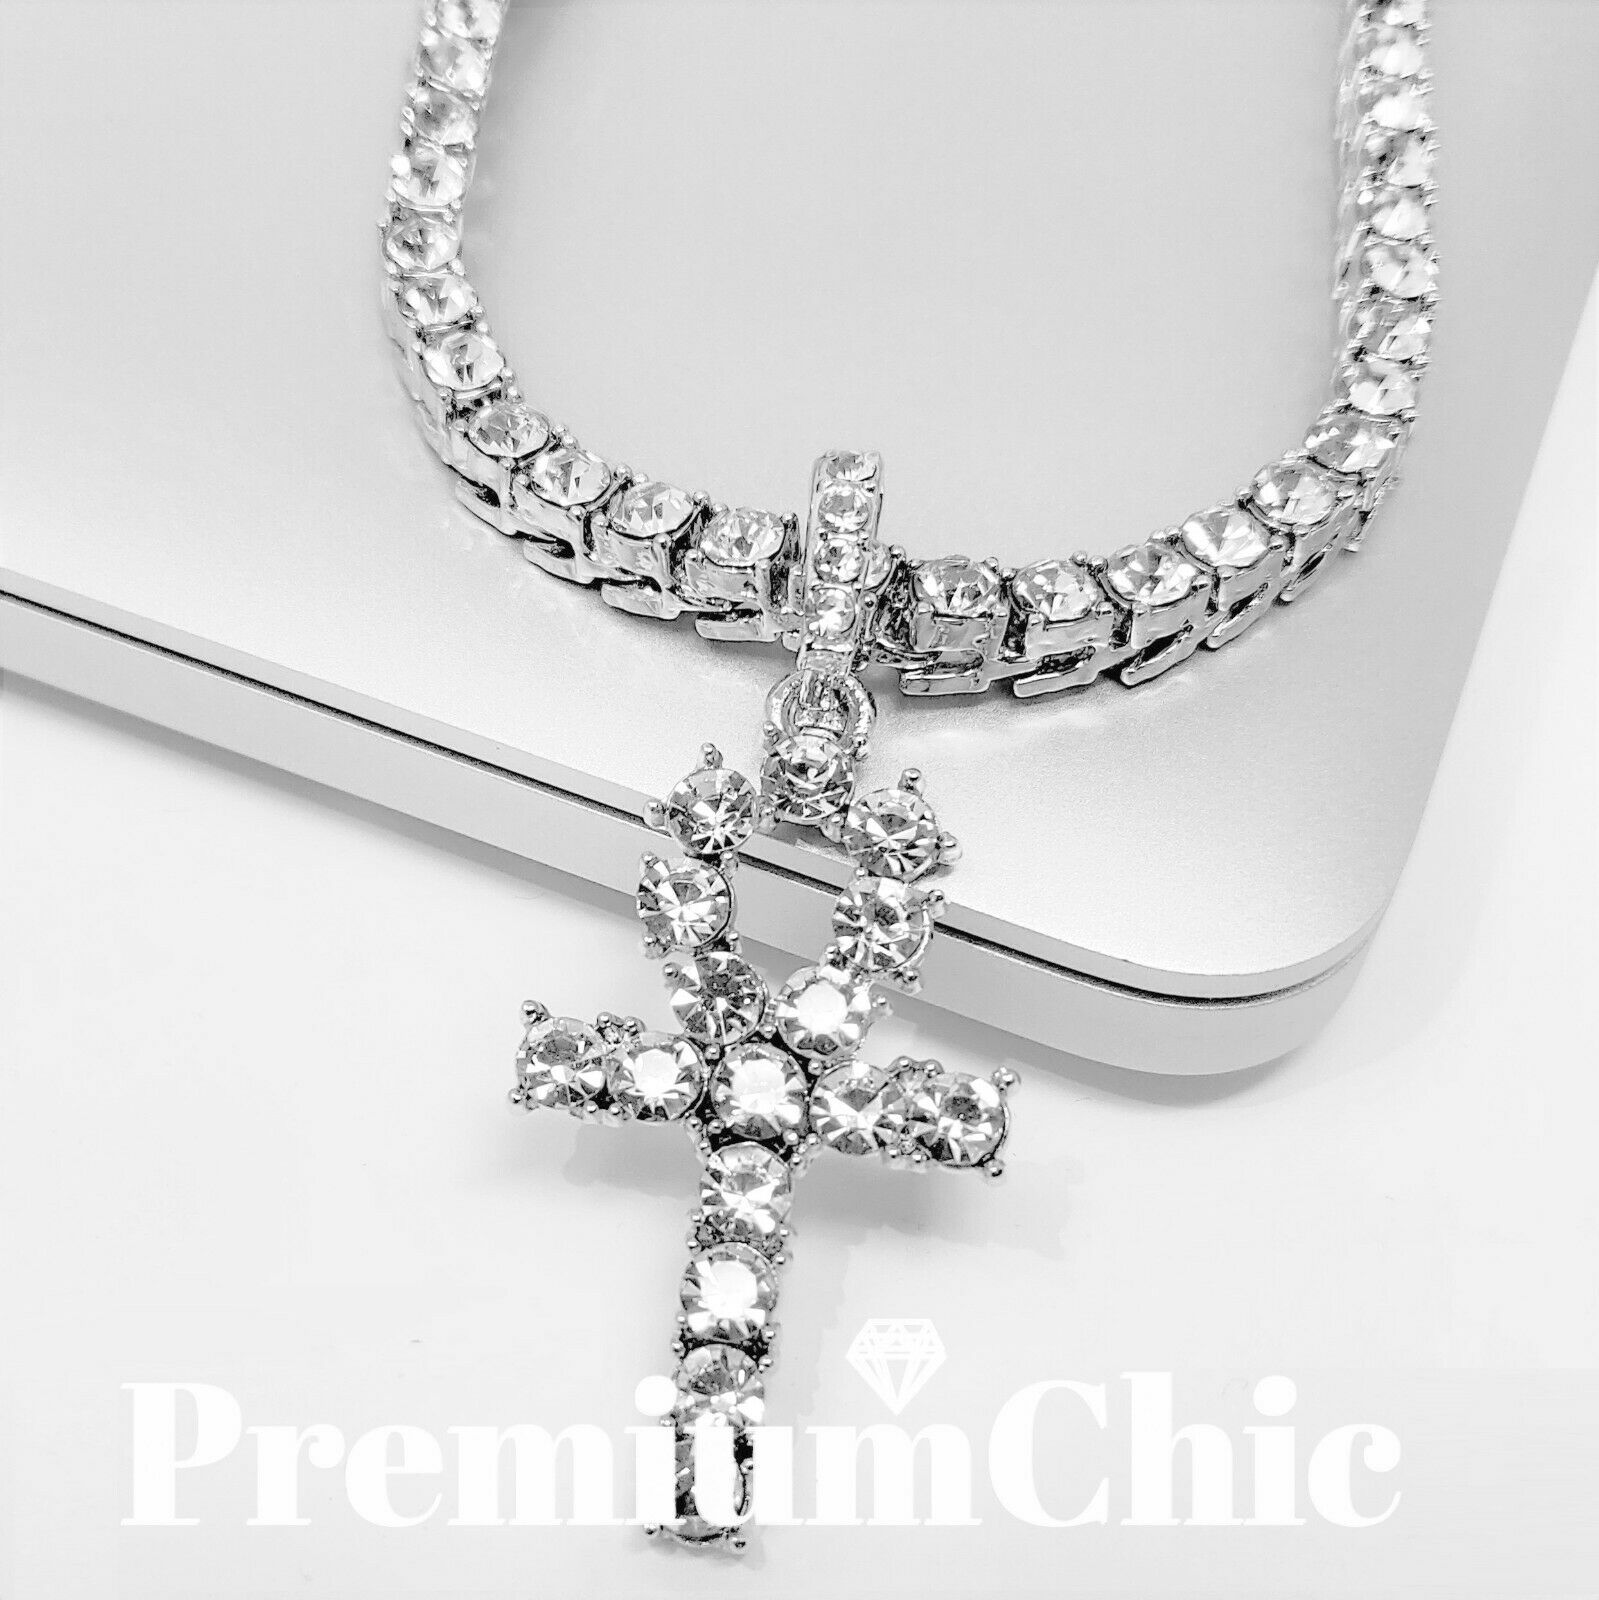 Jewellery - ANKH Cross Pendant Tennis Chain 14K Silver Gold Rose Hip Hop Bling Necklace